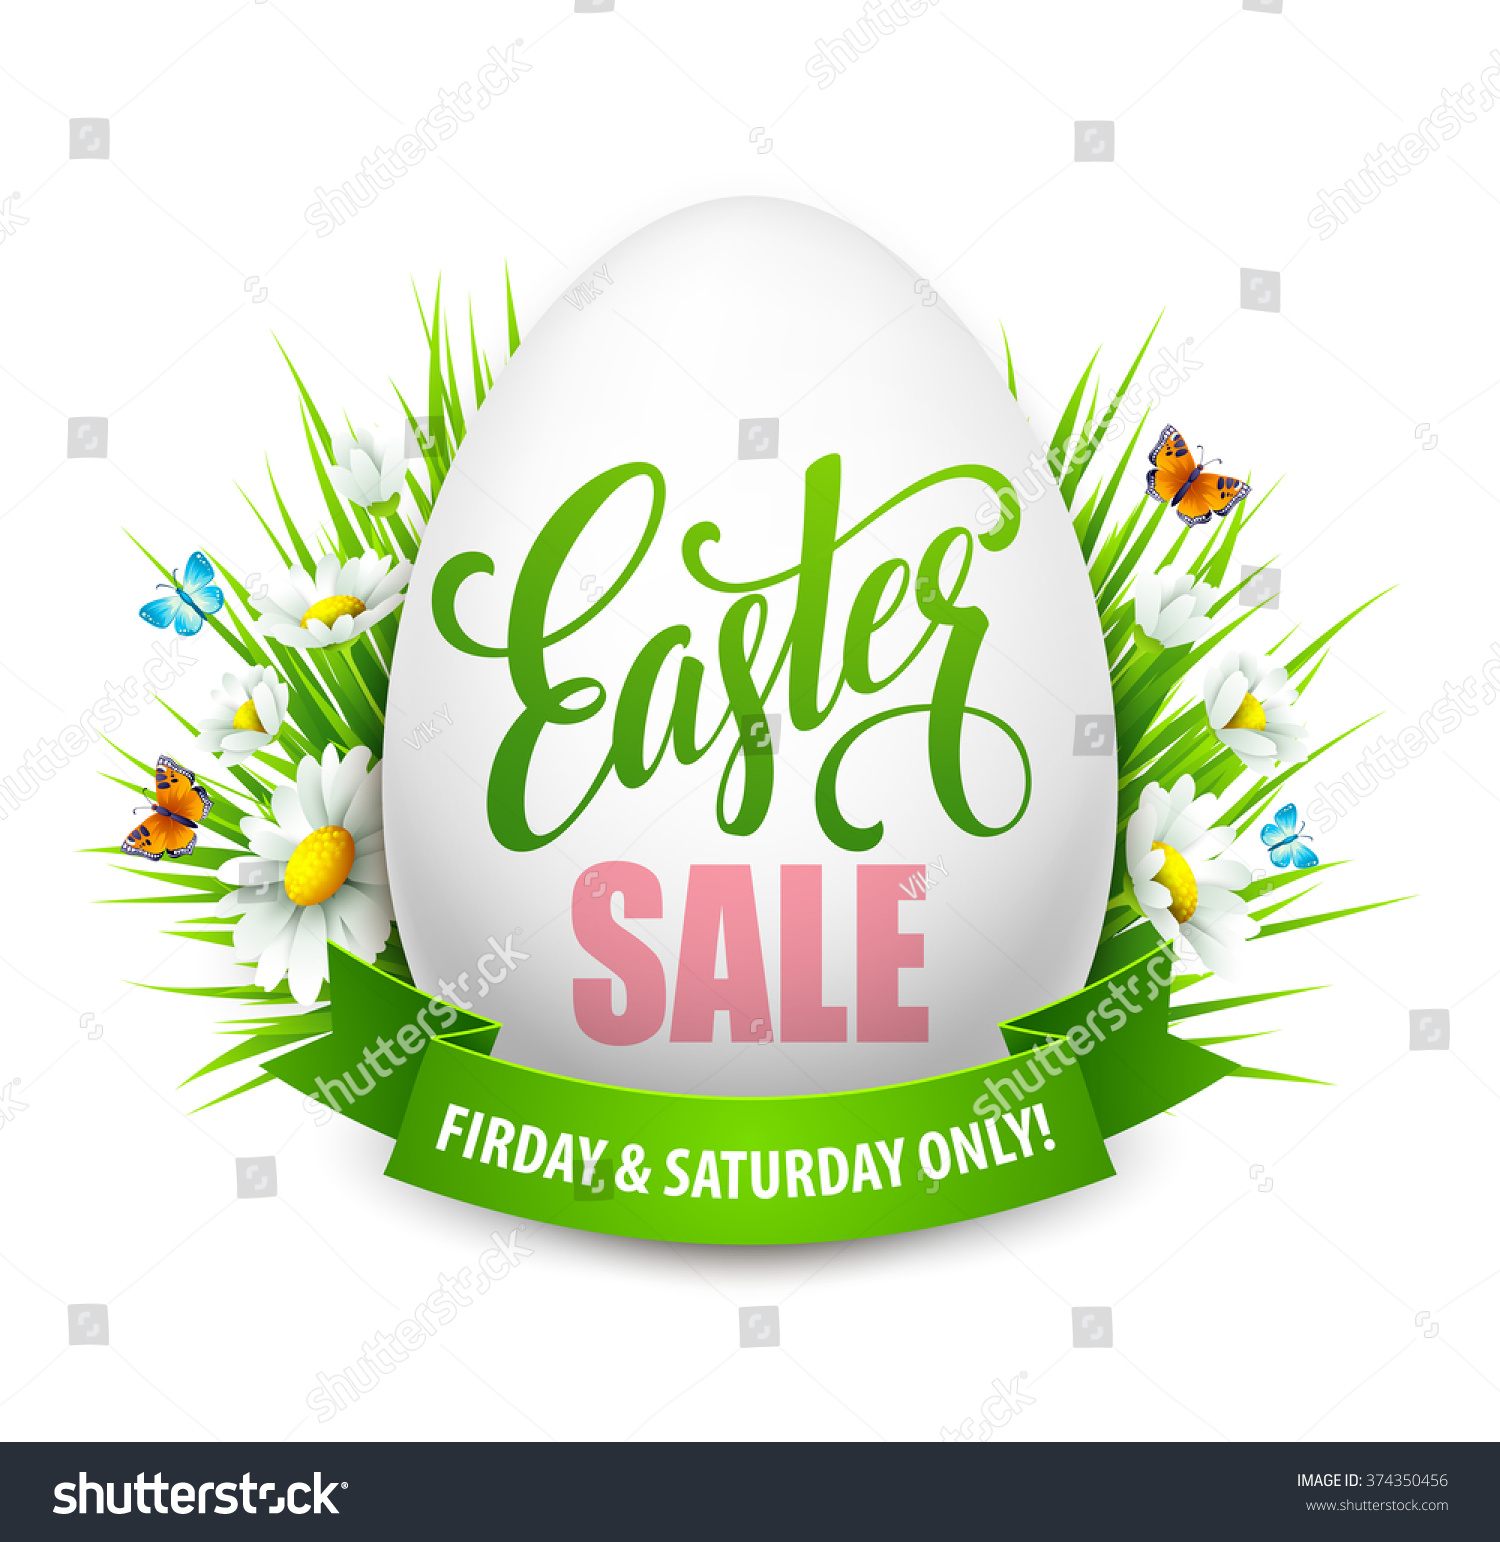 Easter Sale: Easter Sale Background Eggs Spring Flower Stock Vector